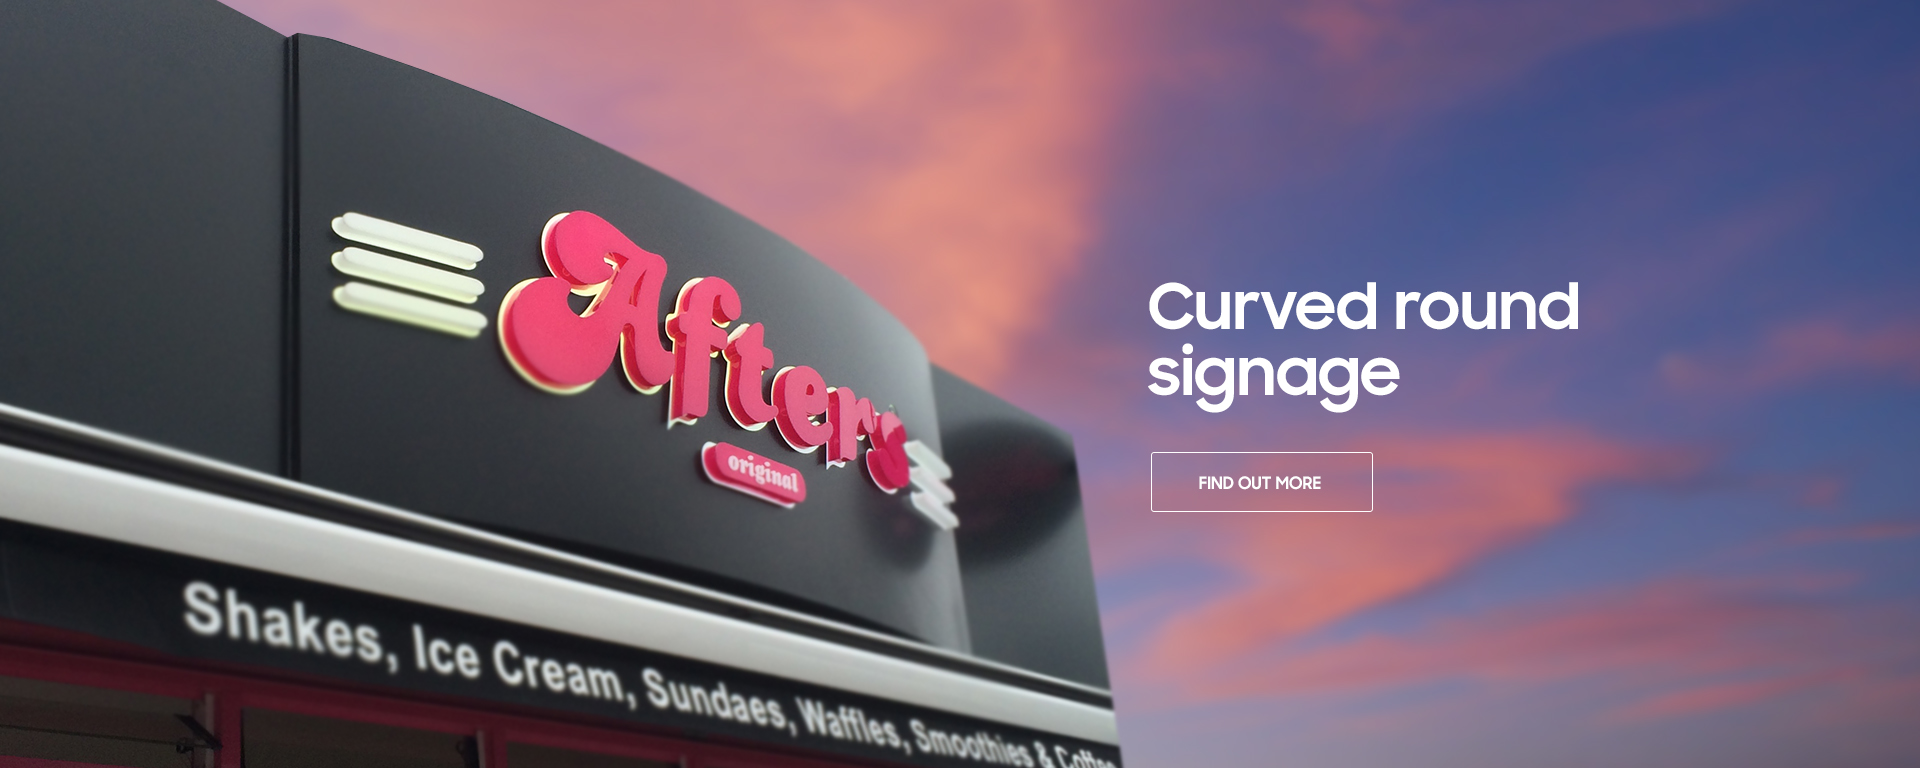 Curved signage